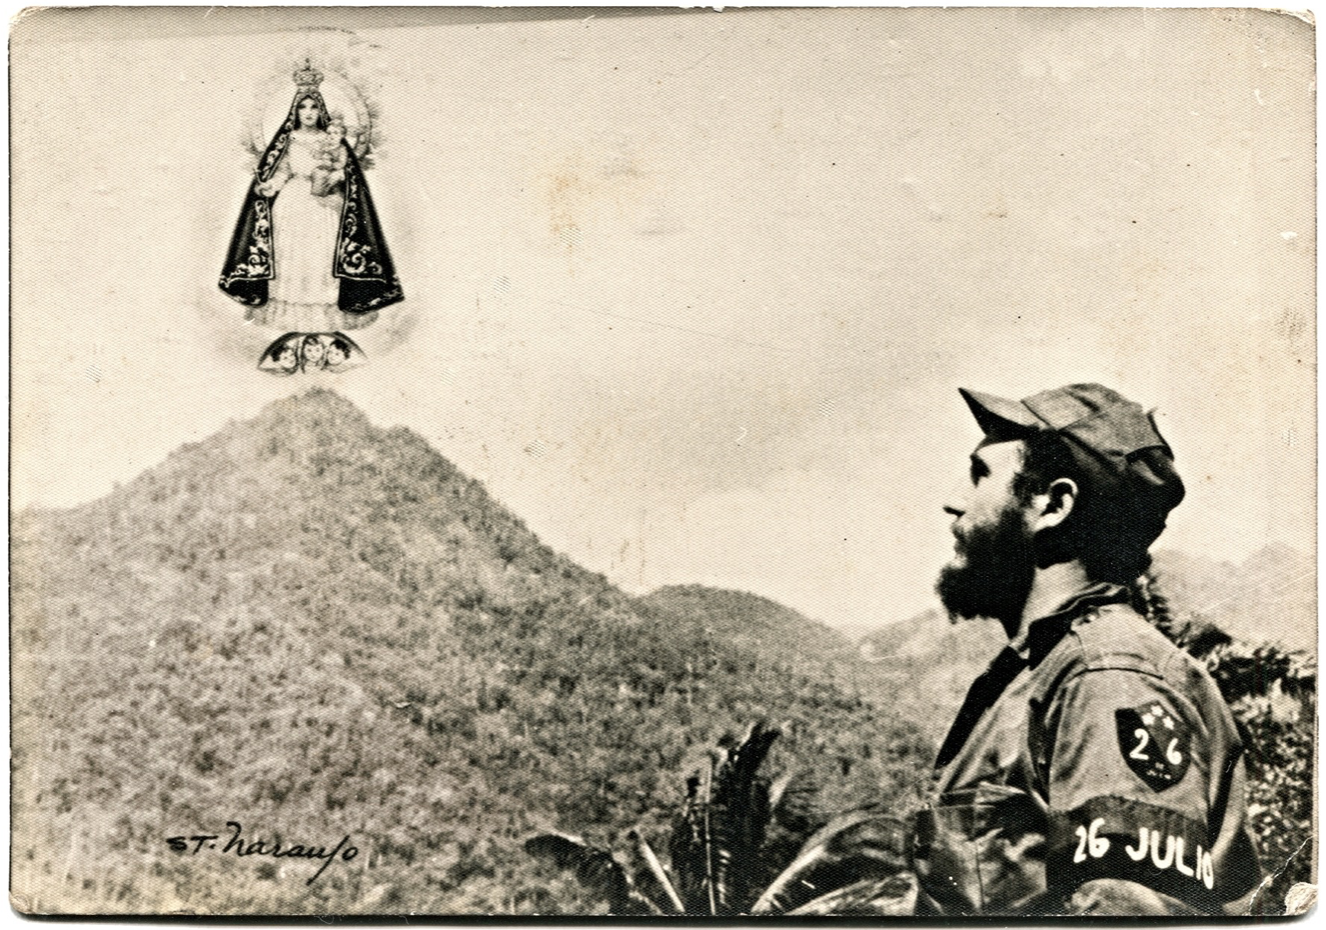 Postcard with Fidel Castro looking towards Our Lady of Charity.